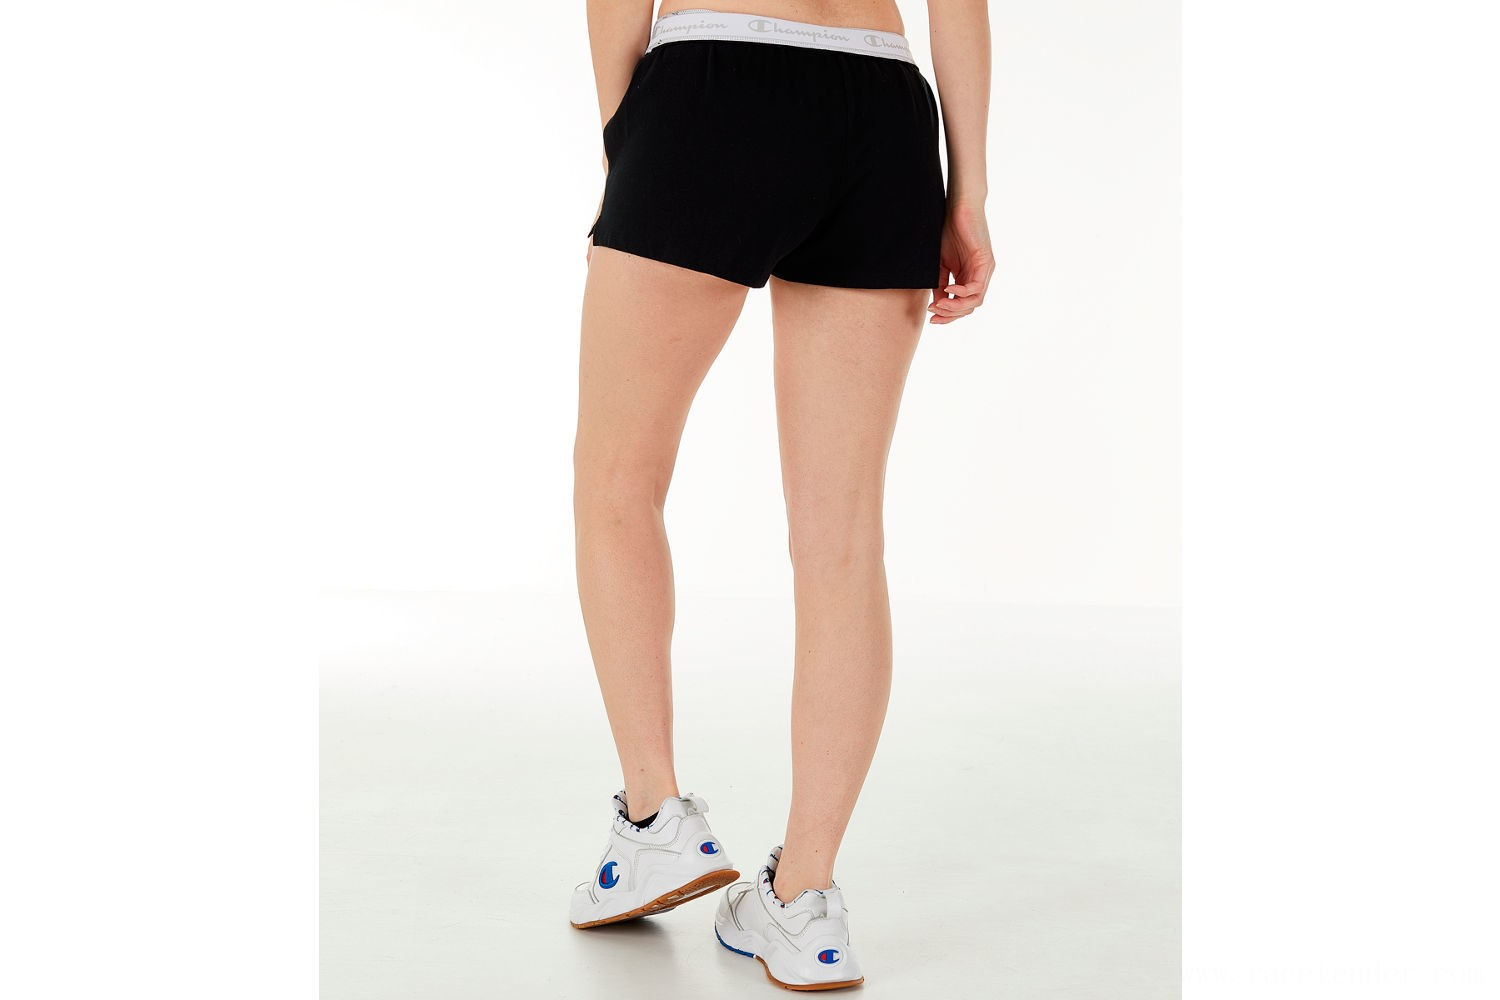 Champion Women's Practice Shorts - Black